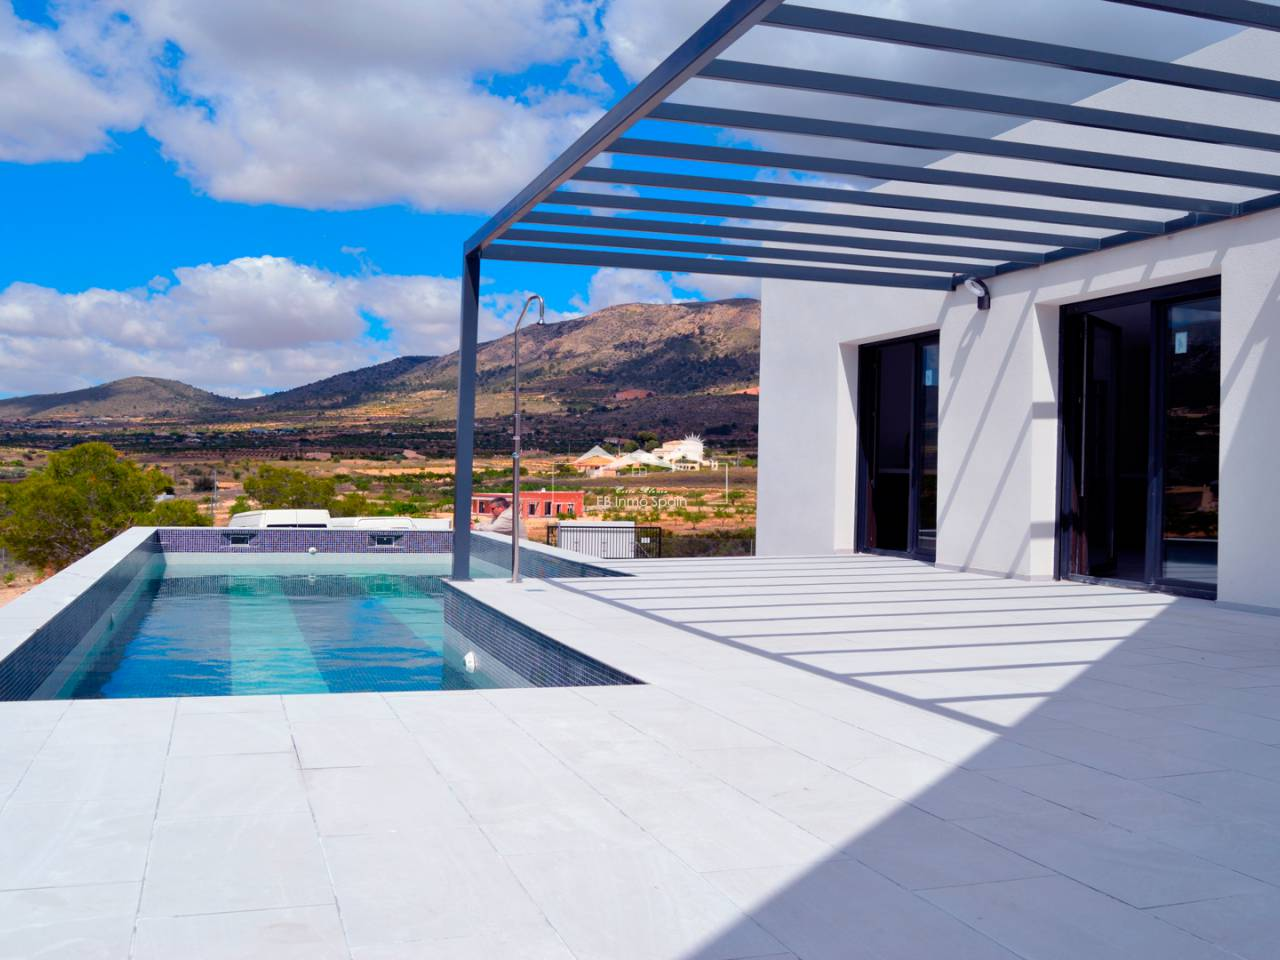 New Build - Villa - Hondon De Las Nieves